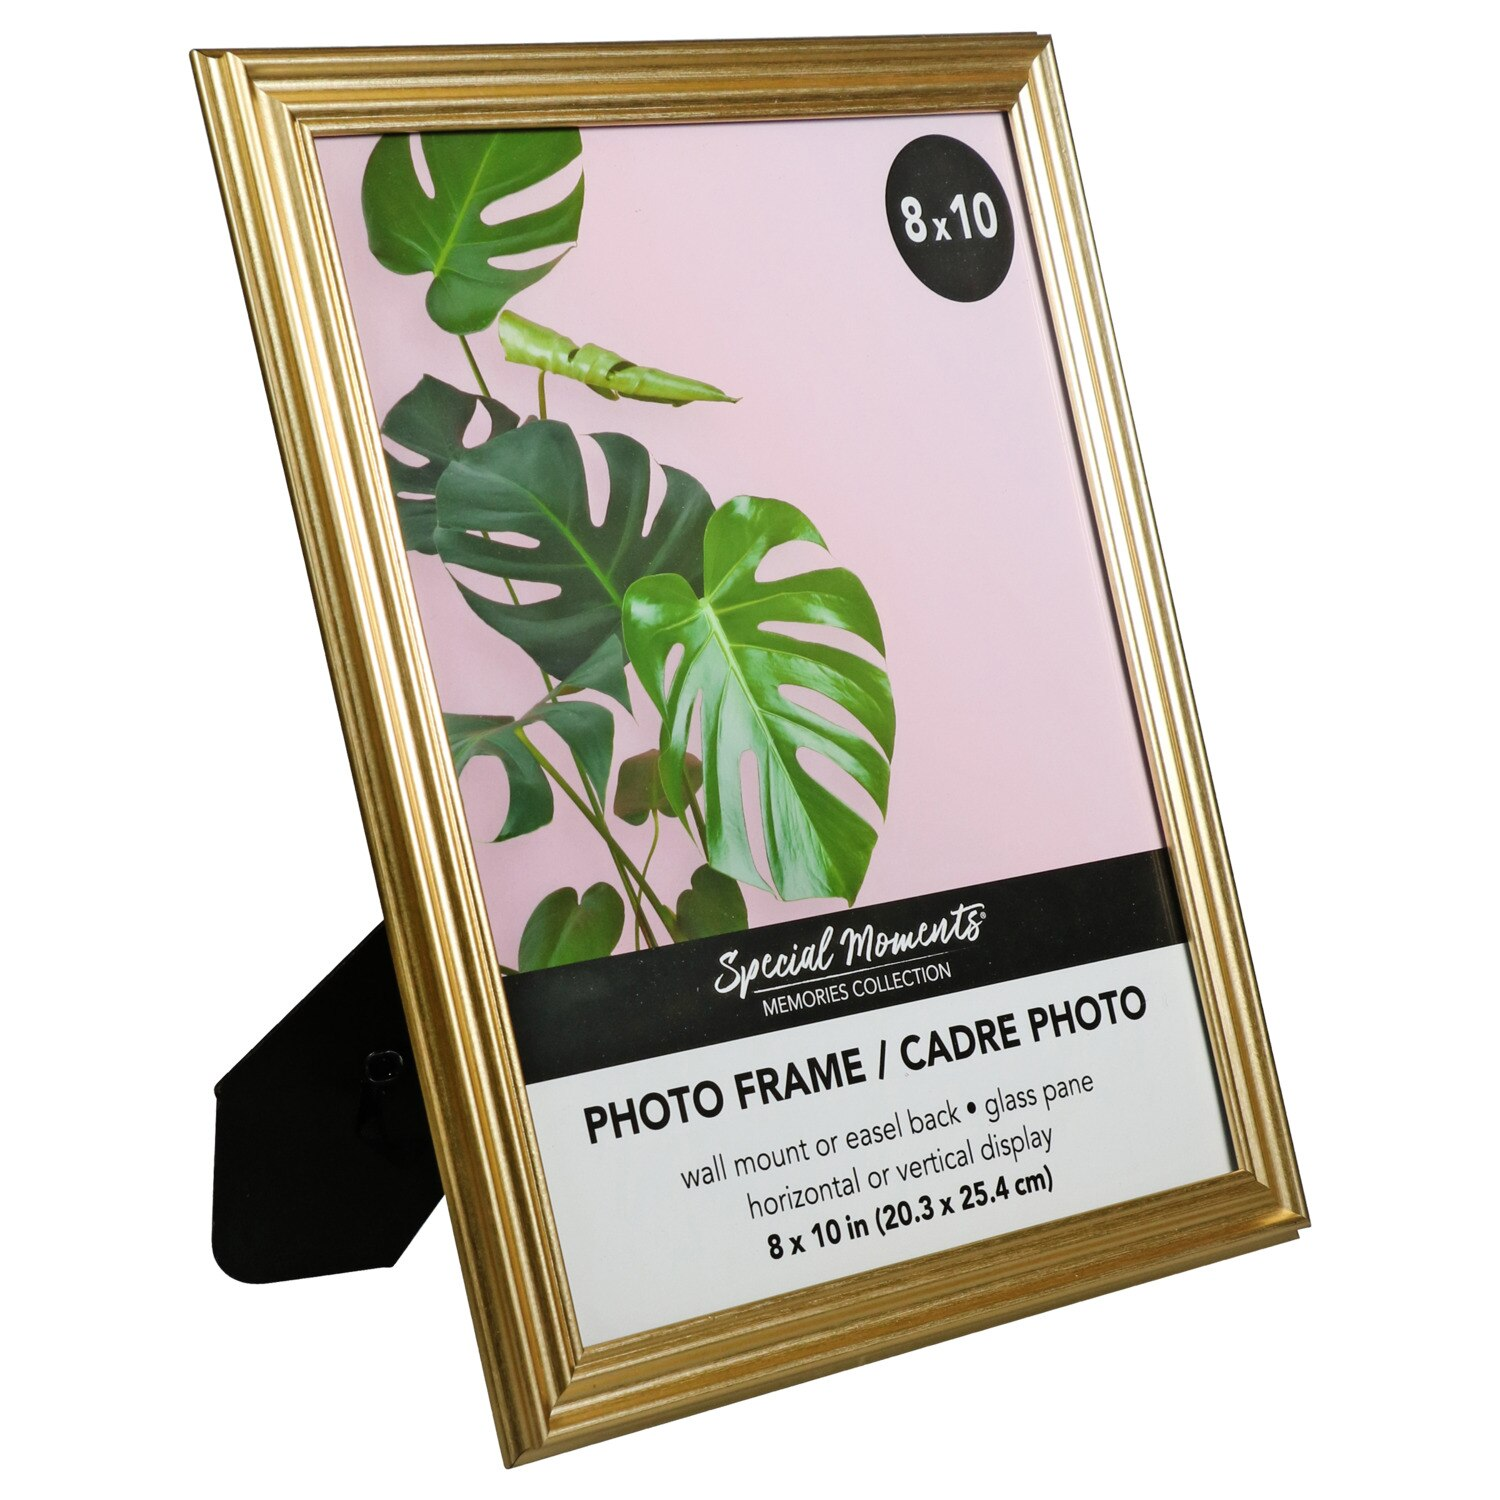 7372775dda76 Special Moments Grooved Inner-Edge Gold Plastic Photo Frames